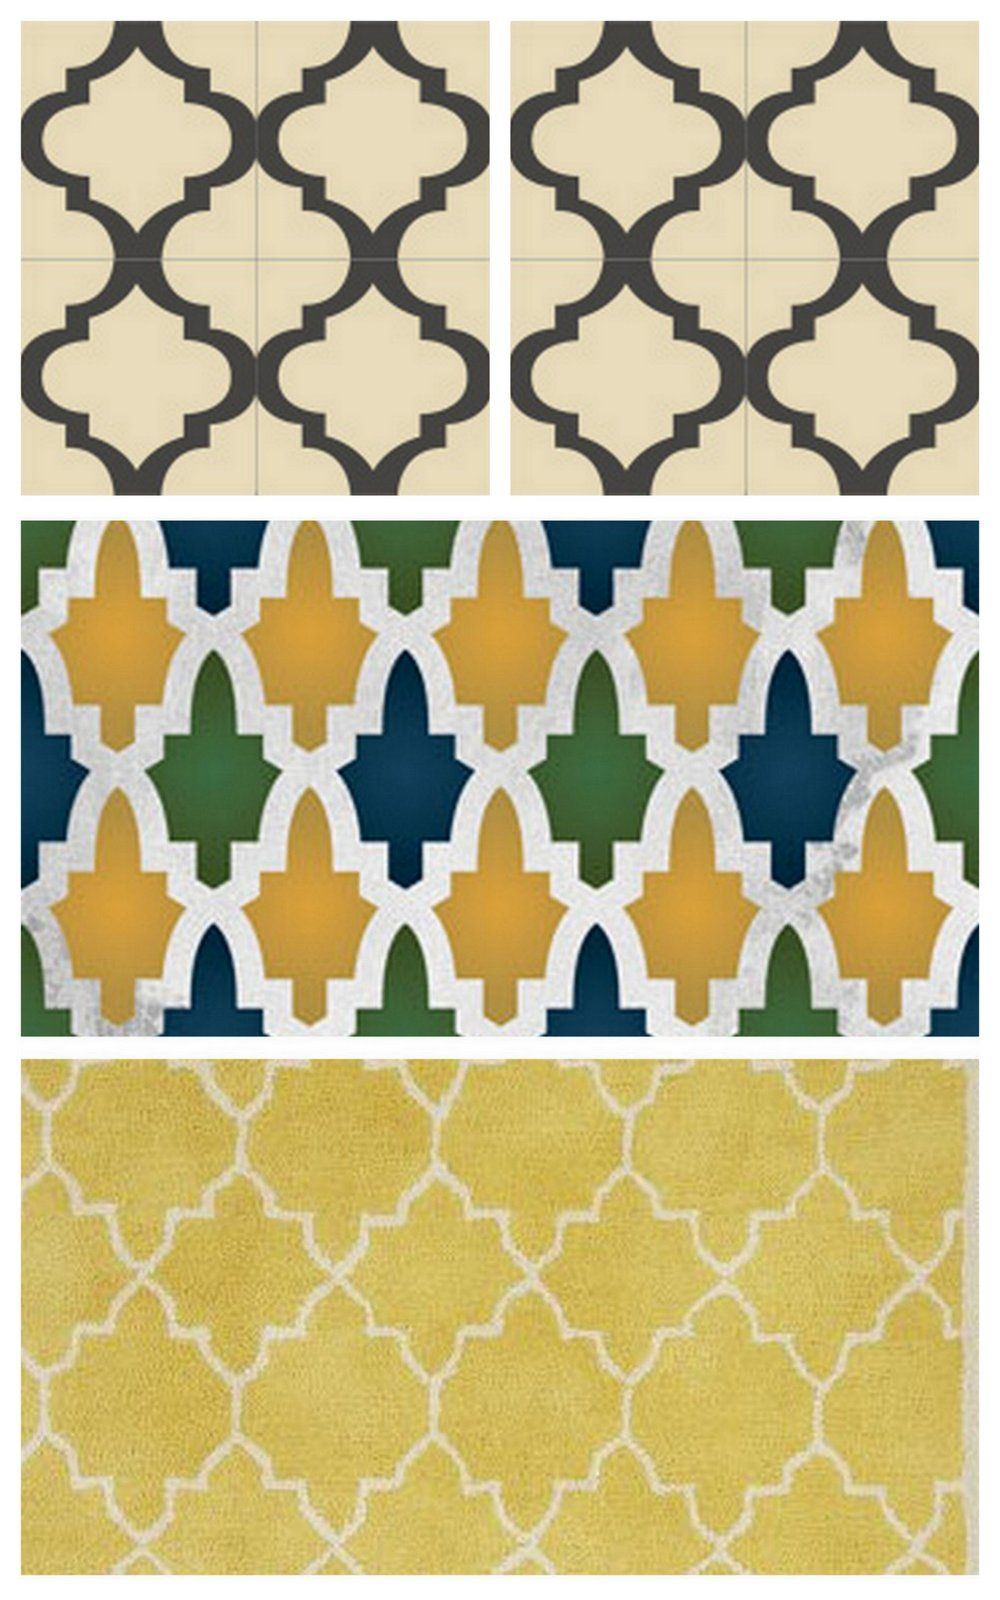 Morrocan | Tiles | Pinterest | Chesapeake virginia, Virginia beach ...